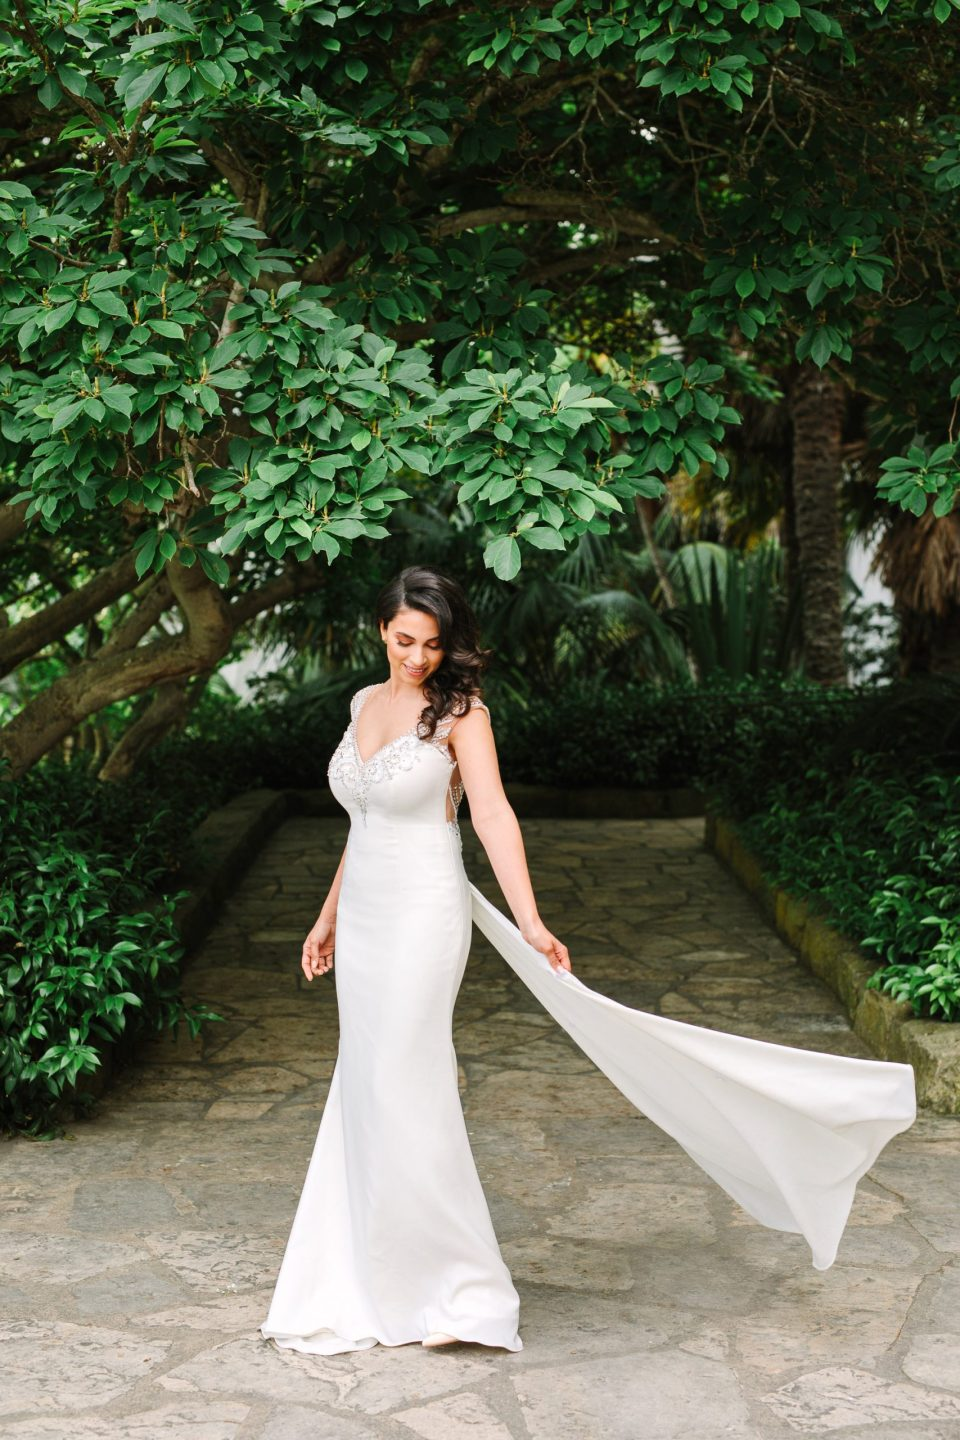 Bride twirling at Santa Barbara Courthouse by Mary Costa Photography